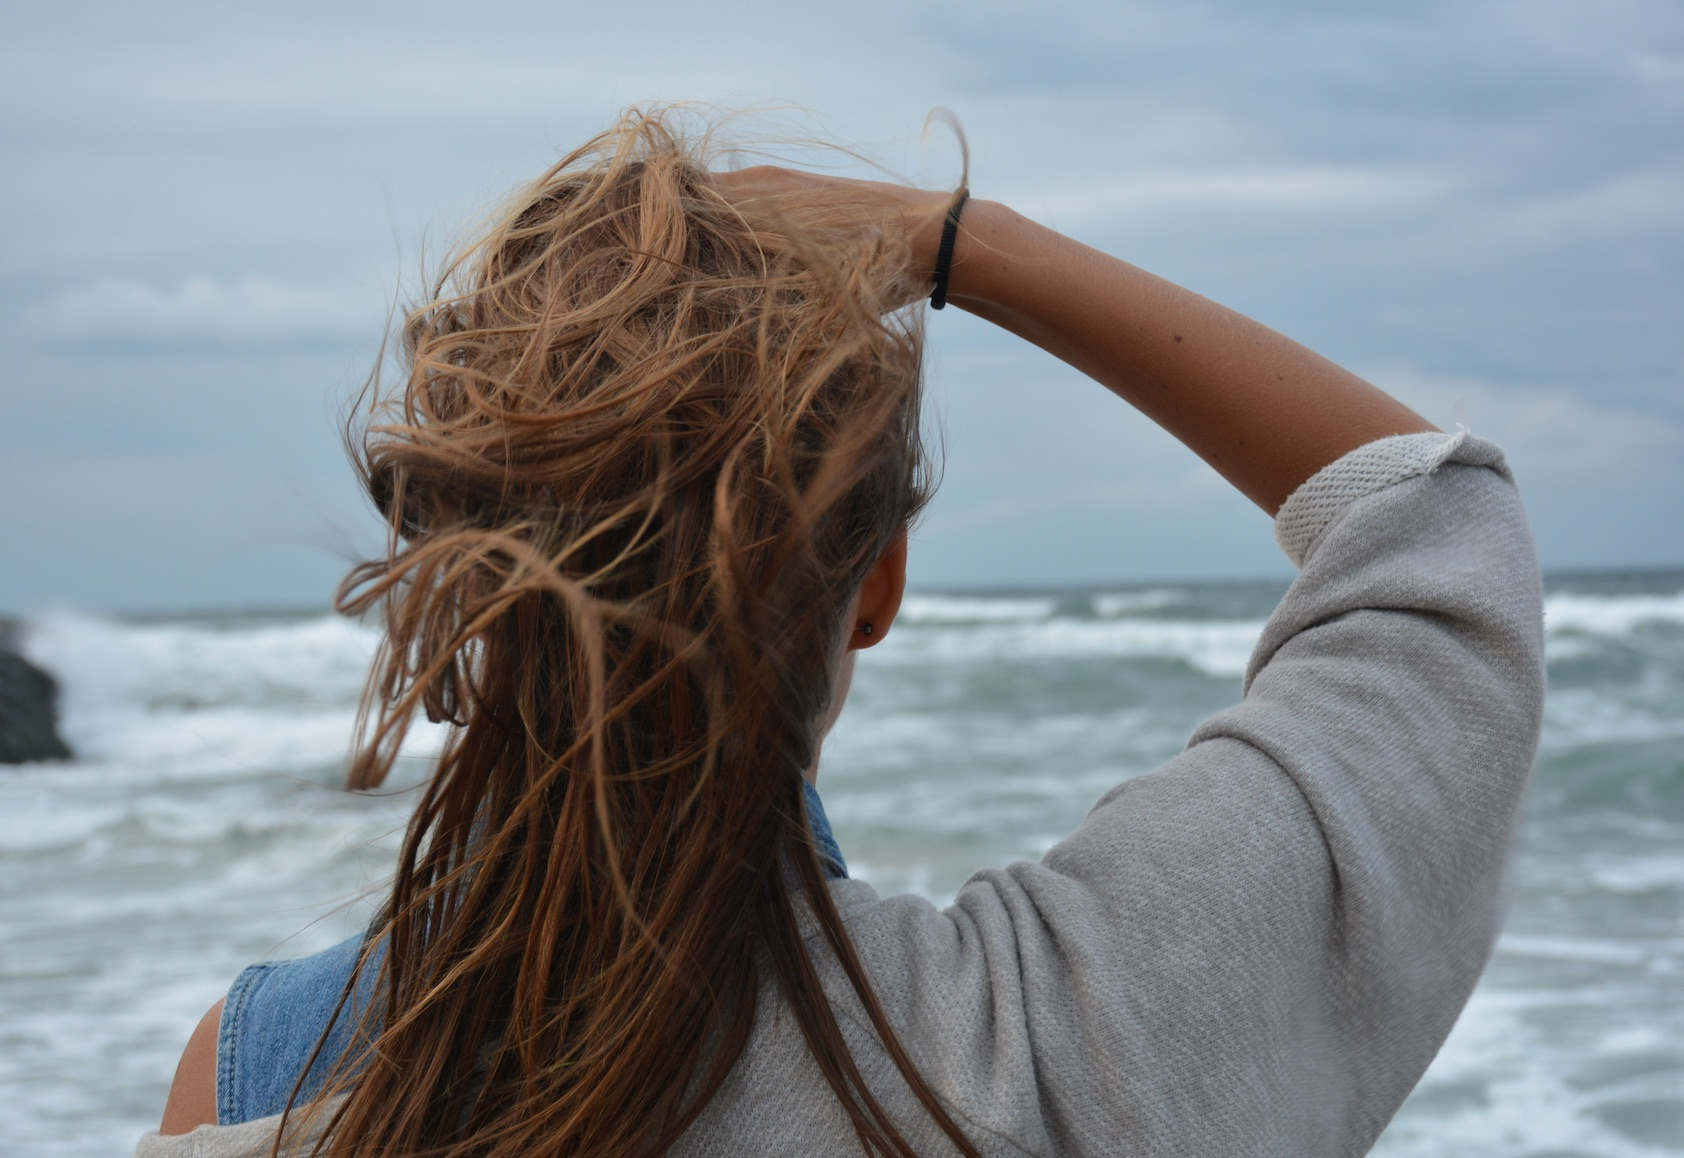 Woman staring at the ocean running her hand through her hair